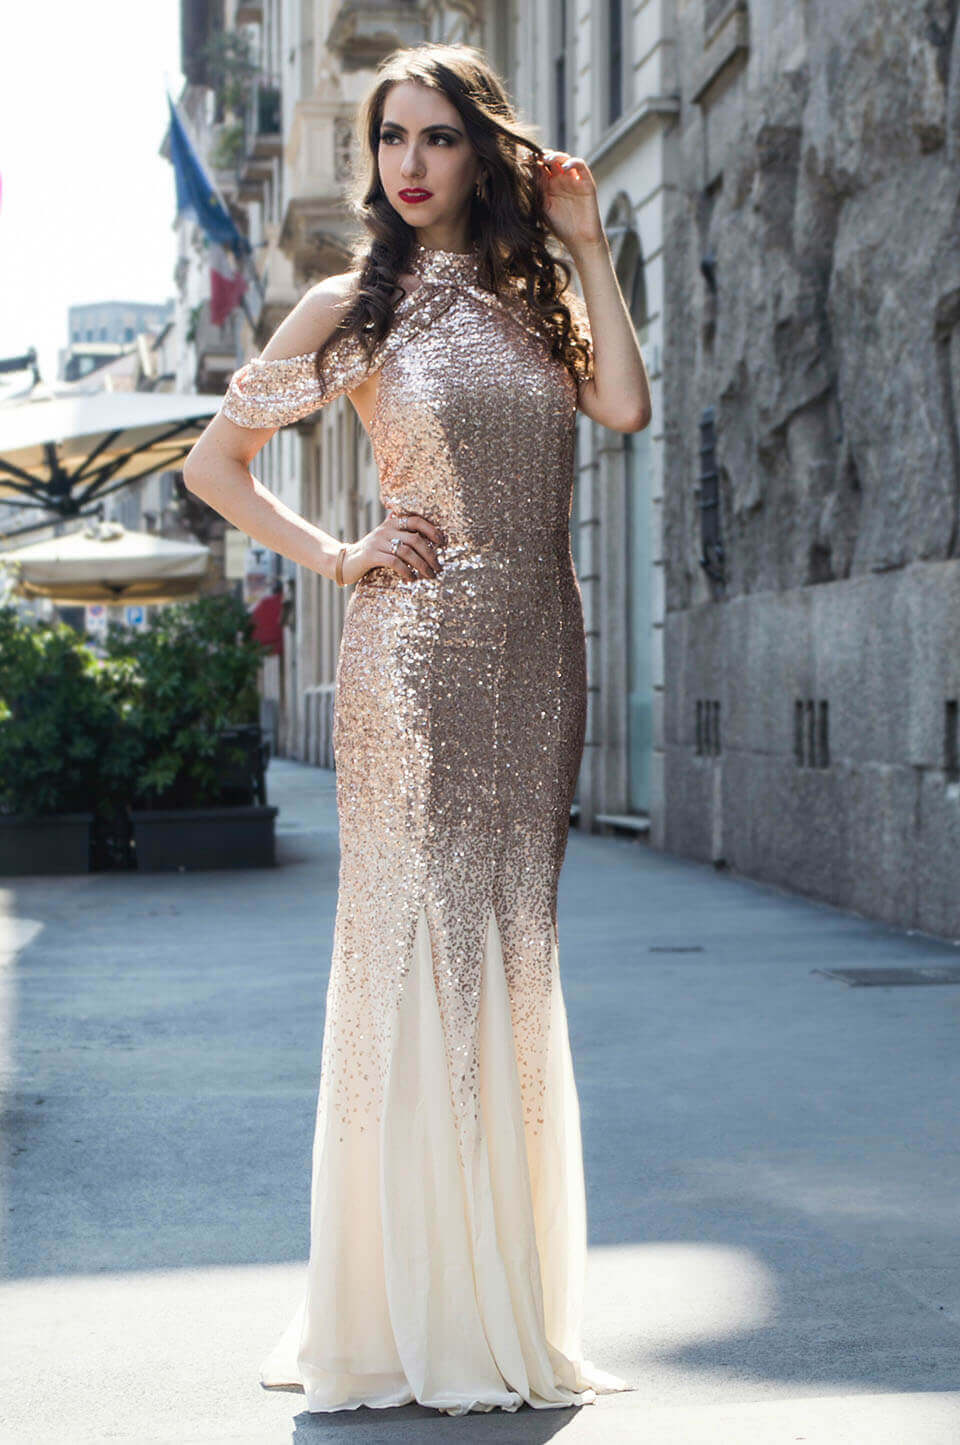 Manu Luize: Goddiva party dress review